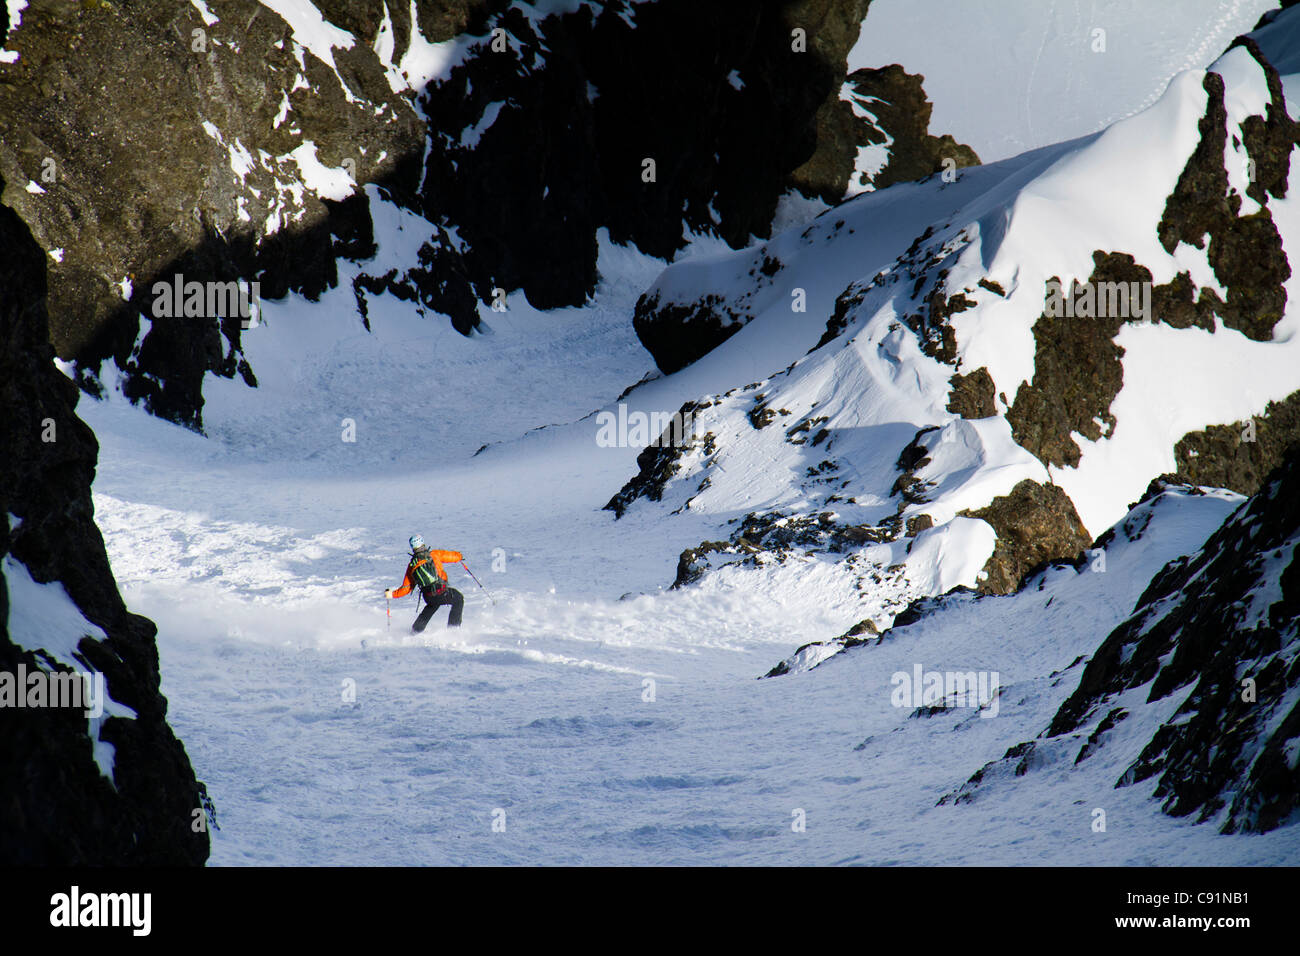 Man backcountry ski mountaineering on the north face of Korohusk Peak in the Ram Valley, Chugach Mountains, Eagle - Stock Image